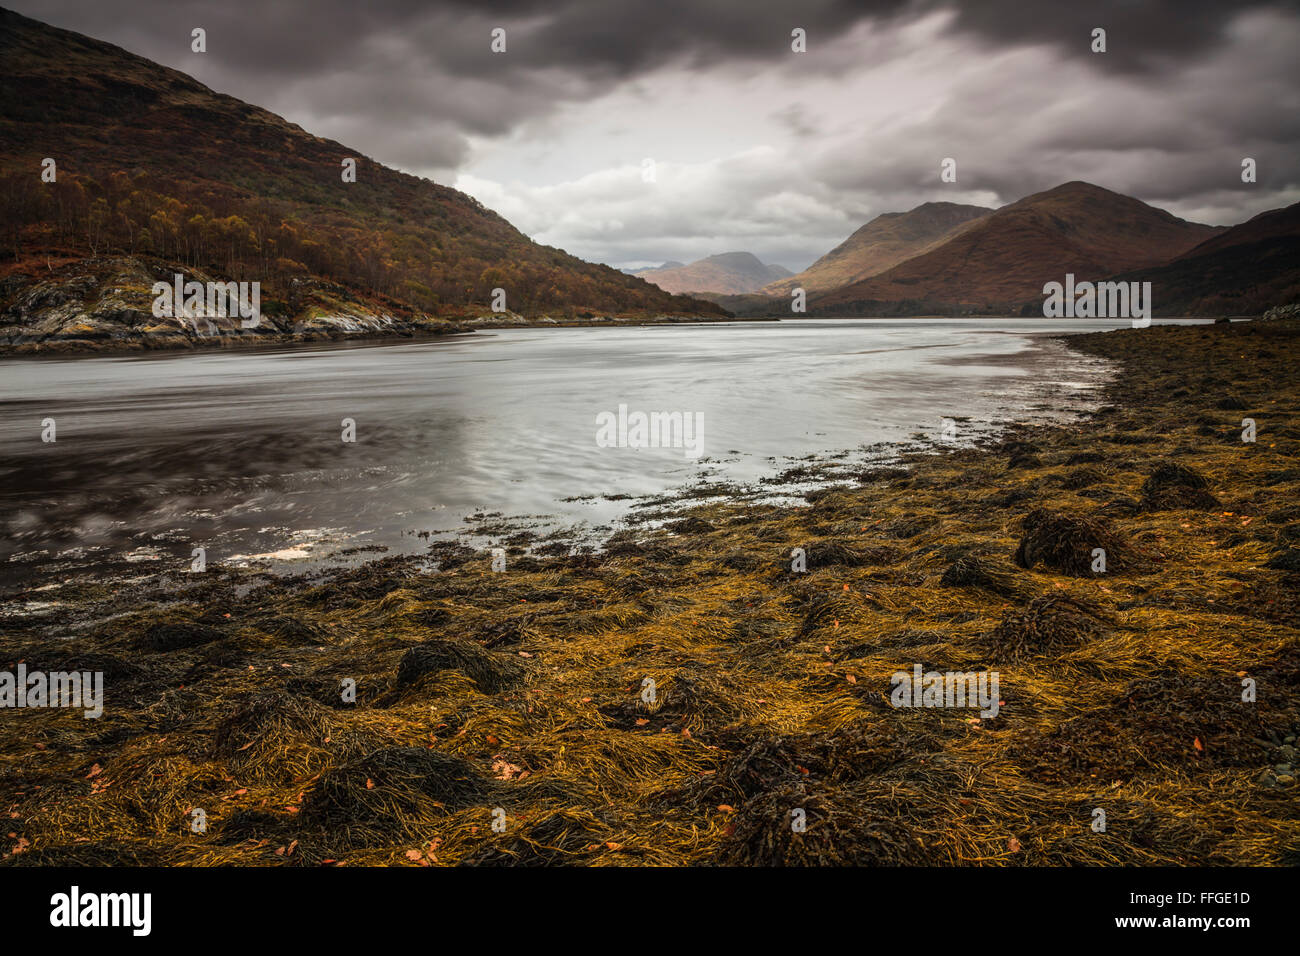 Loch Creran in the Scottish Highlands, captured in early November from near the road bridge on the A828 Loch Leven - Stock Image